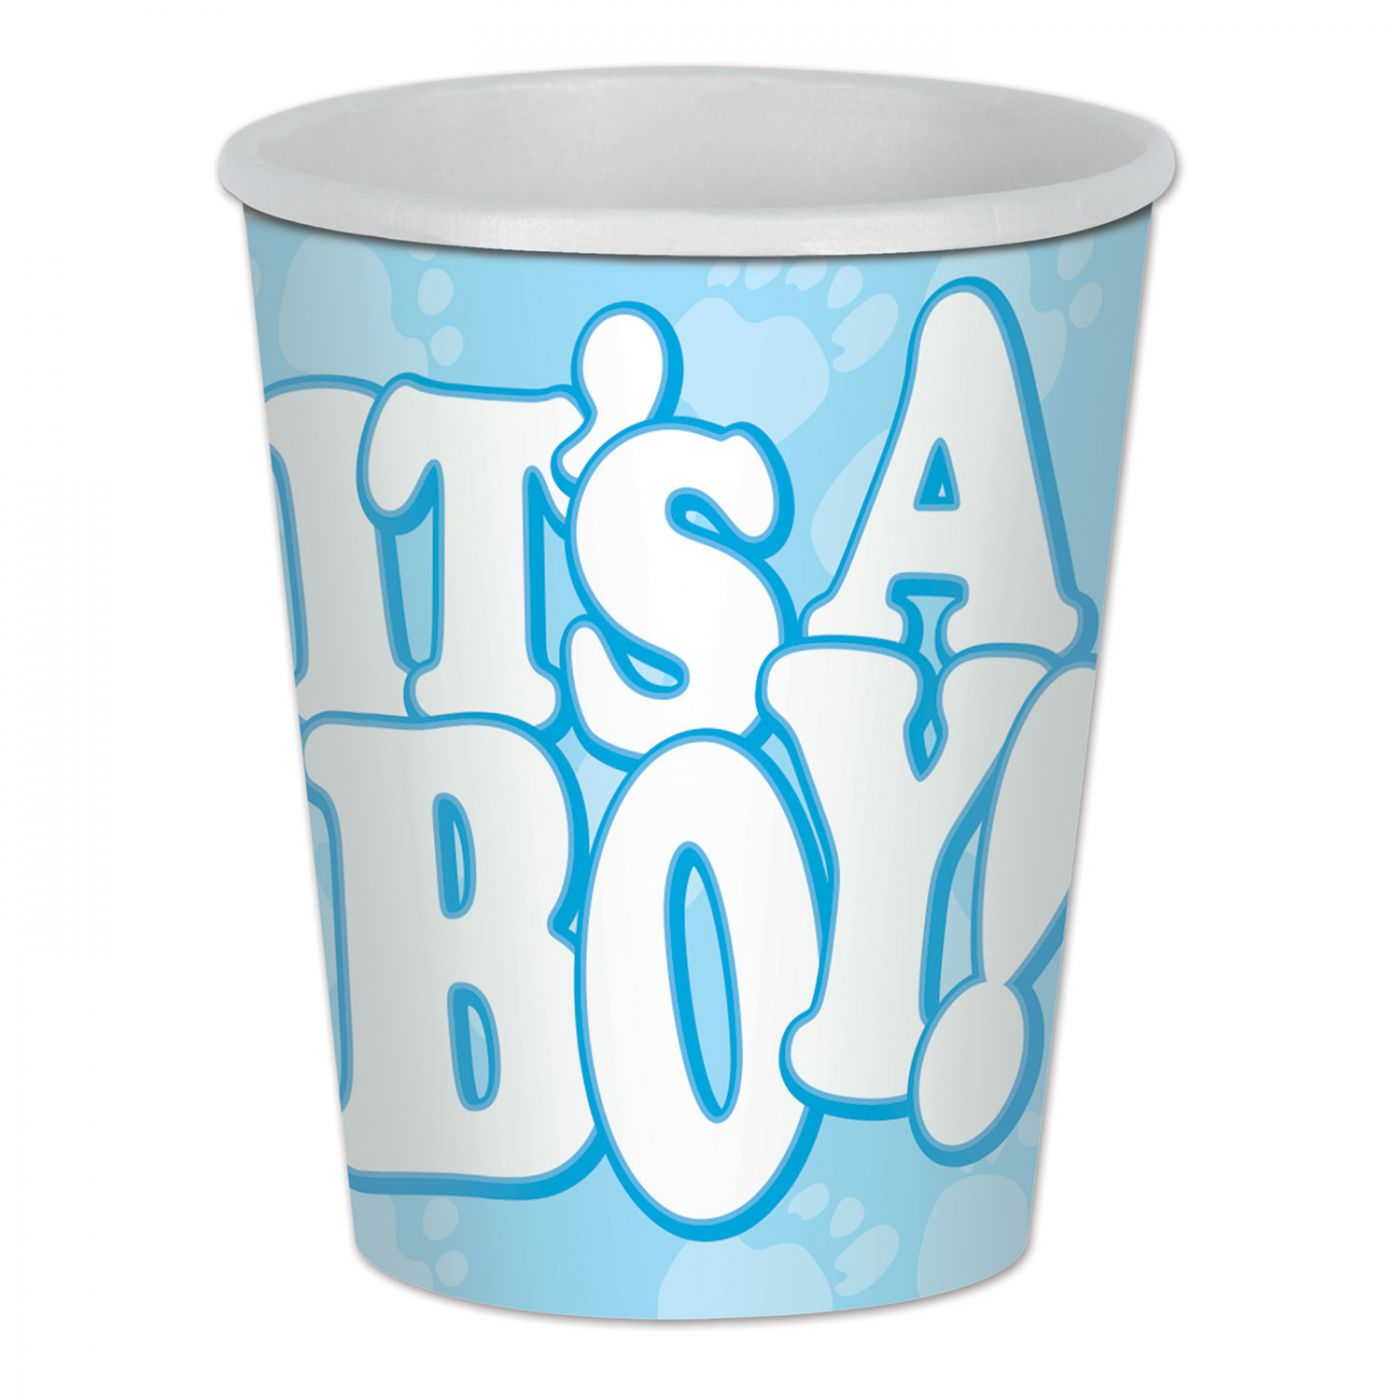 It's A Boy! Beverage Cups image